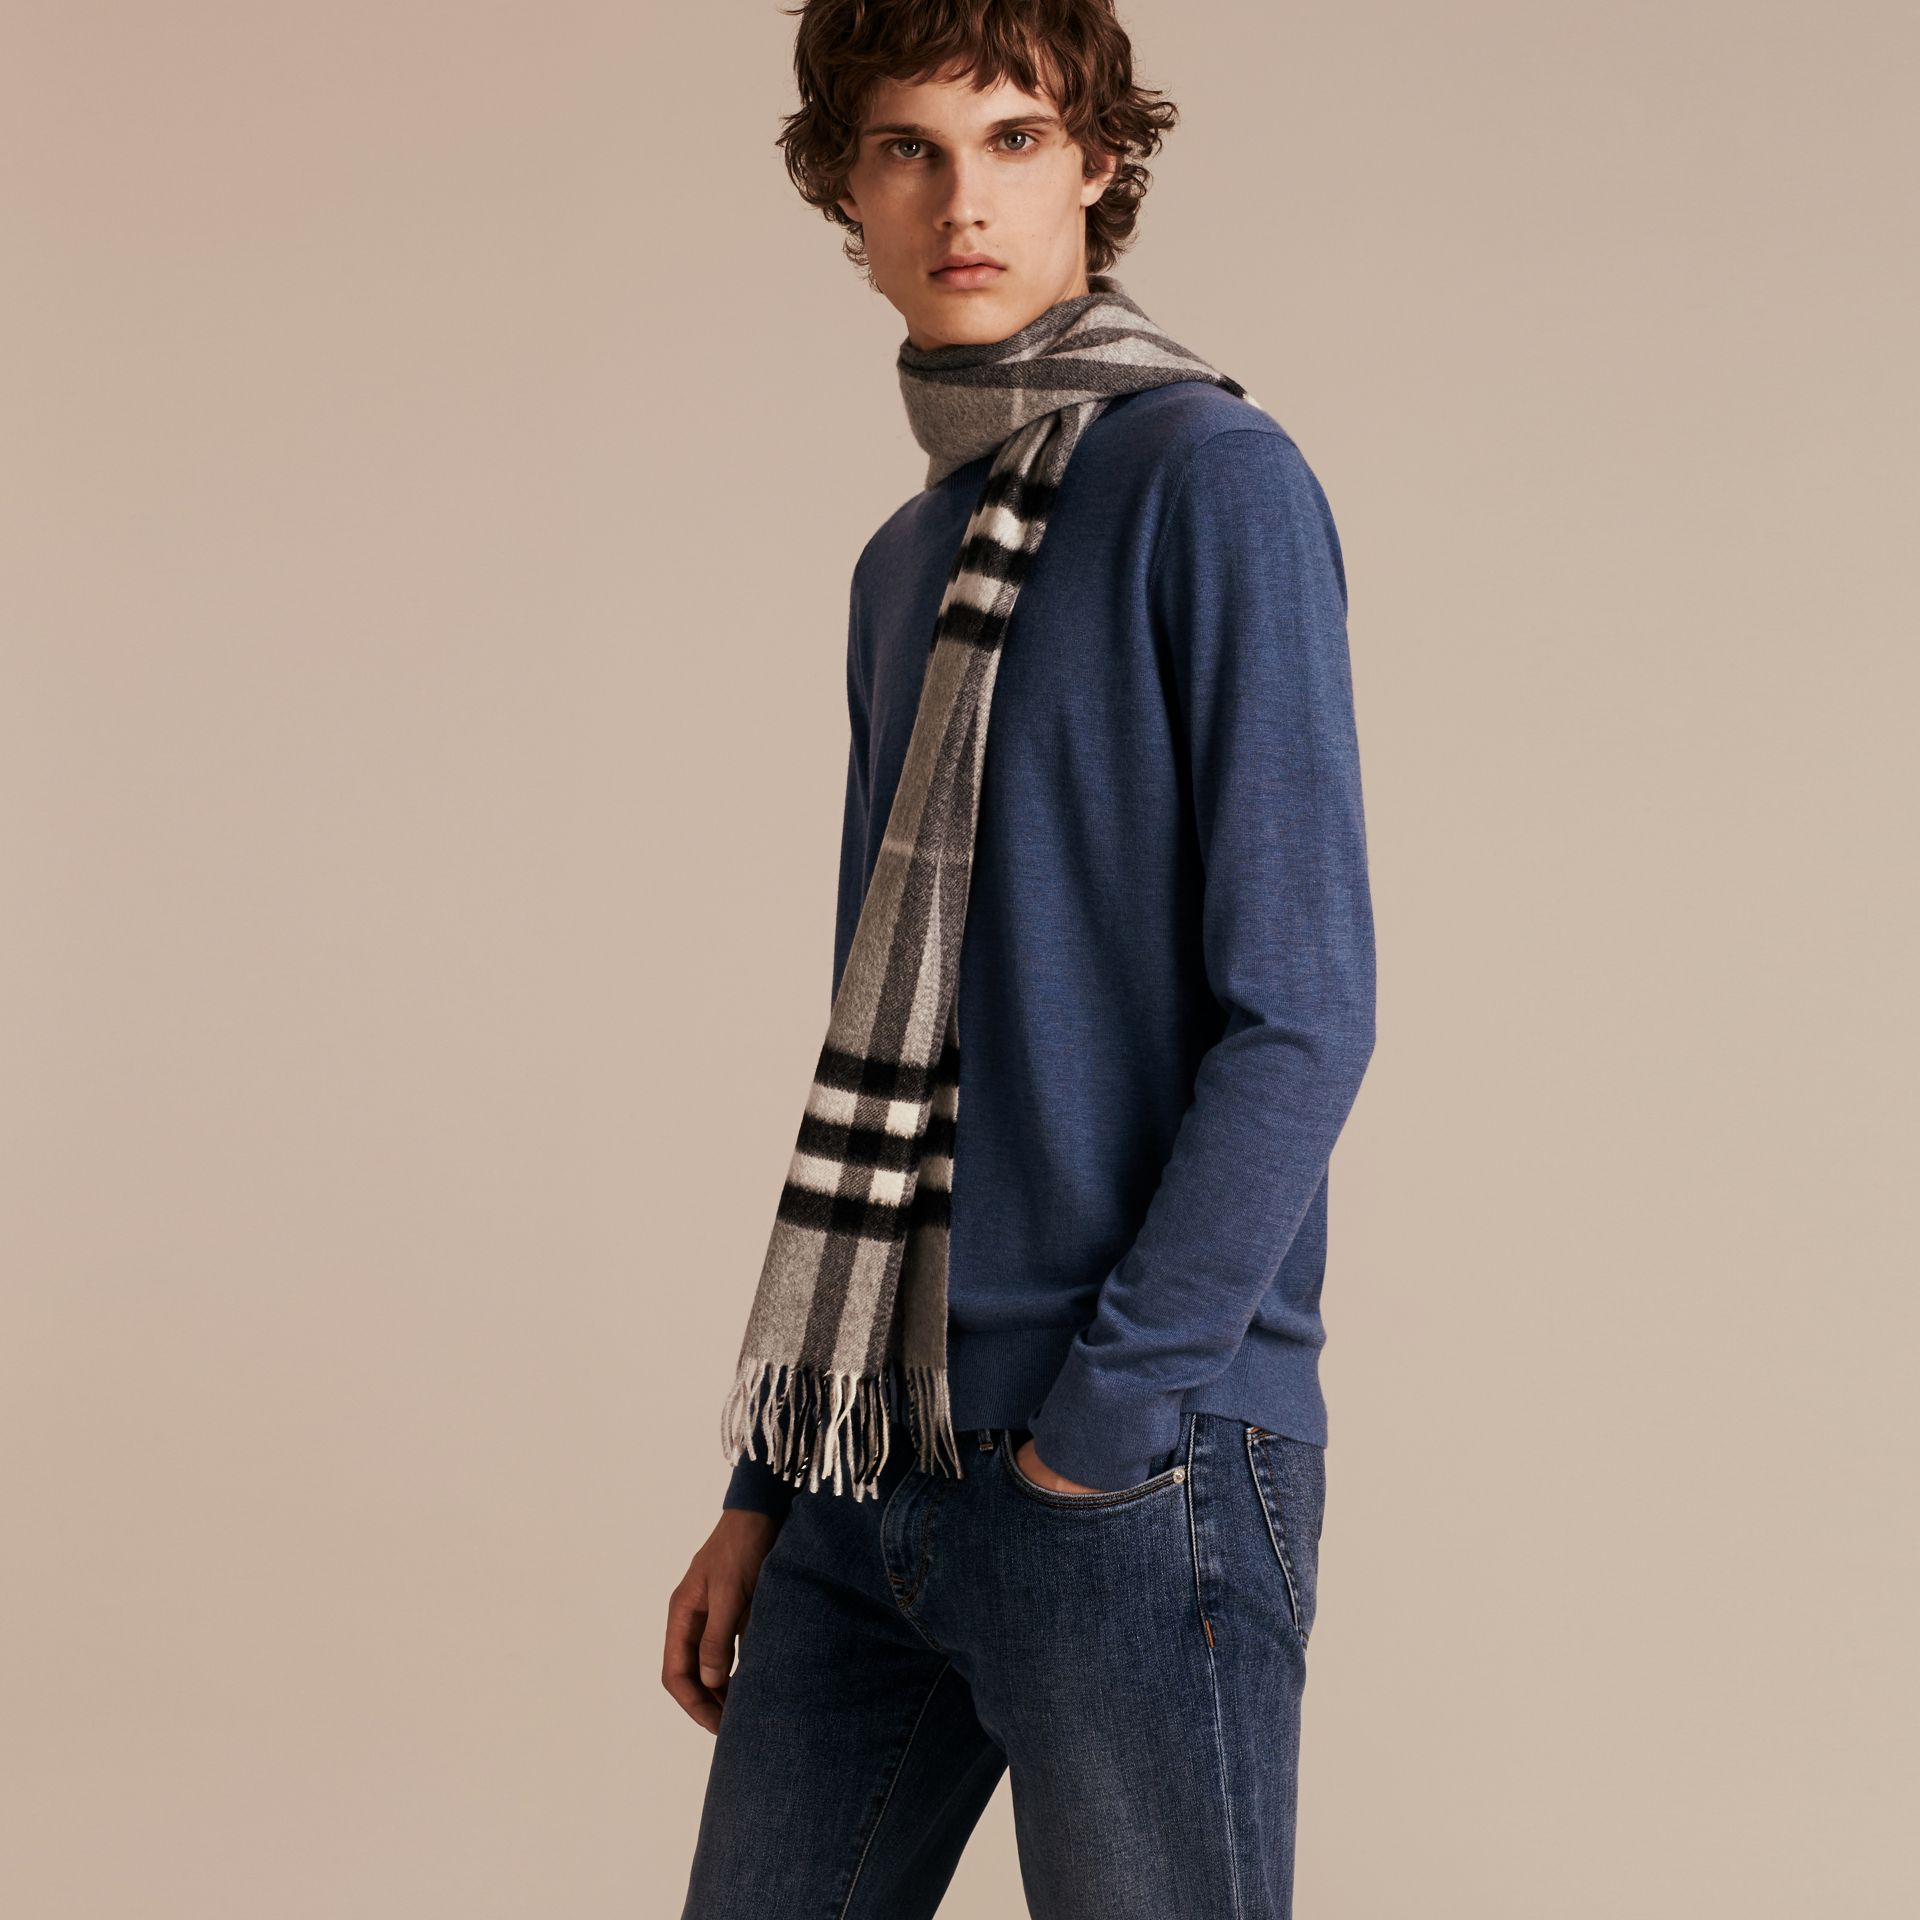 Check Jacquard Detail Cashmere Sweater in Dusty Blue - Men | Burberry - gallery image 6